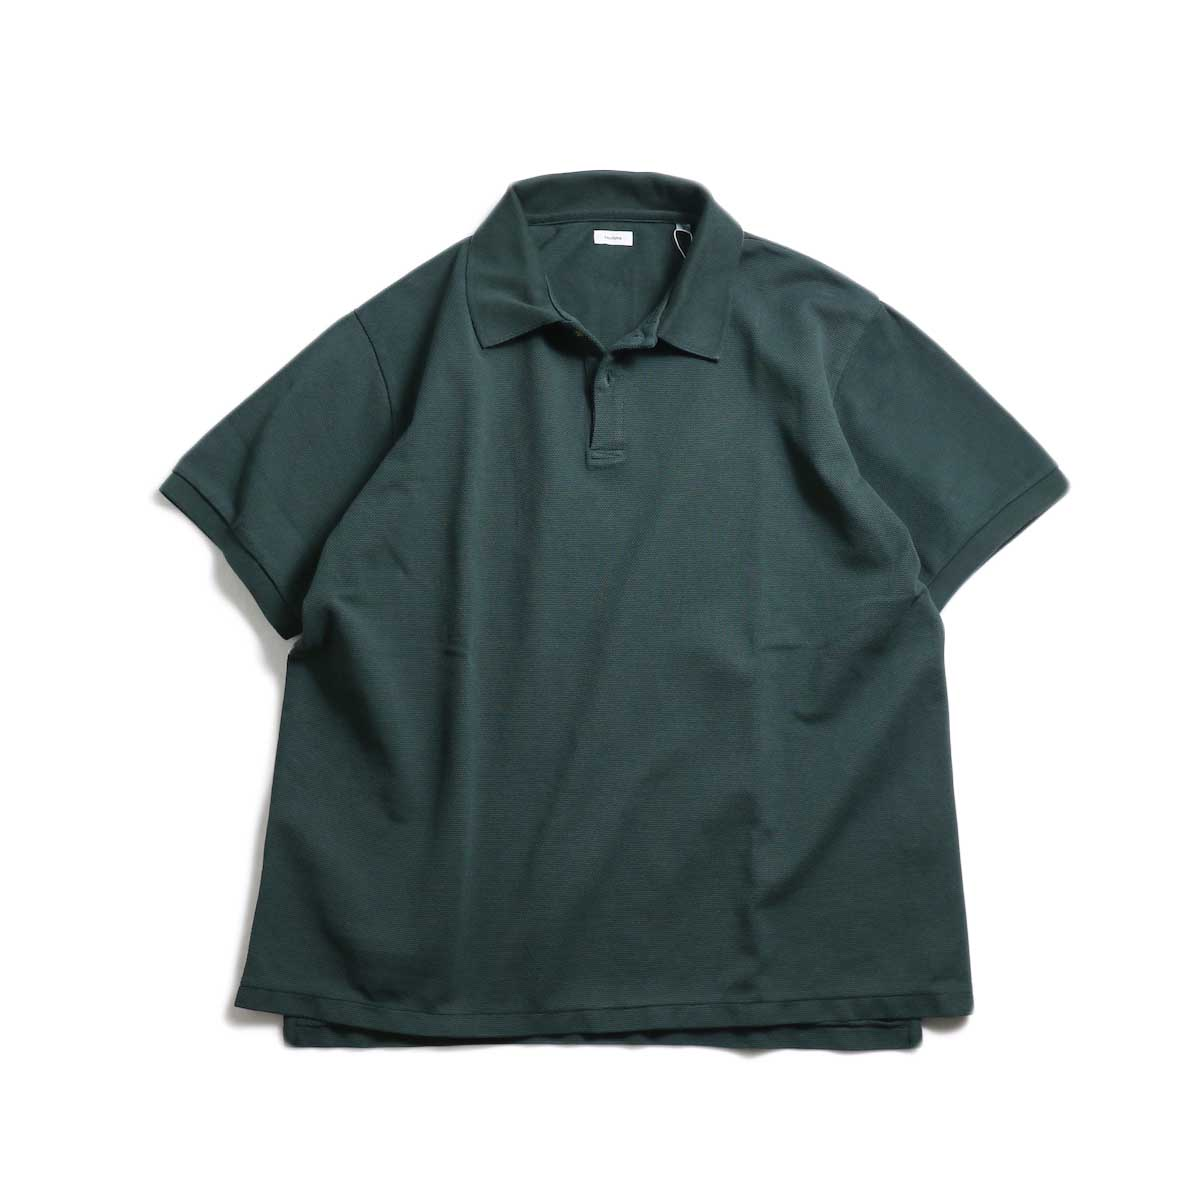 blurhms / Seed Stitch Polo Shirt -Deep Olive